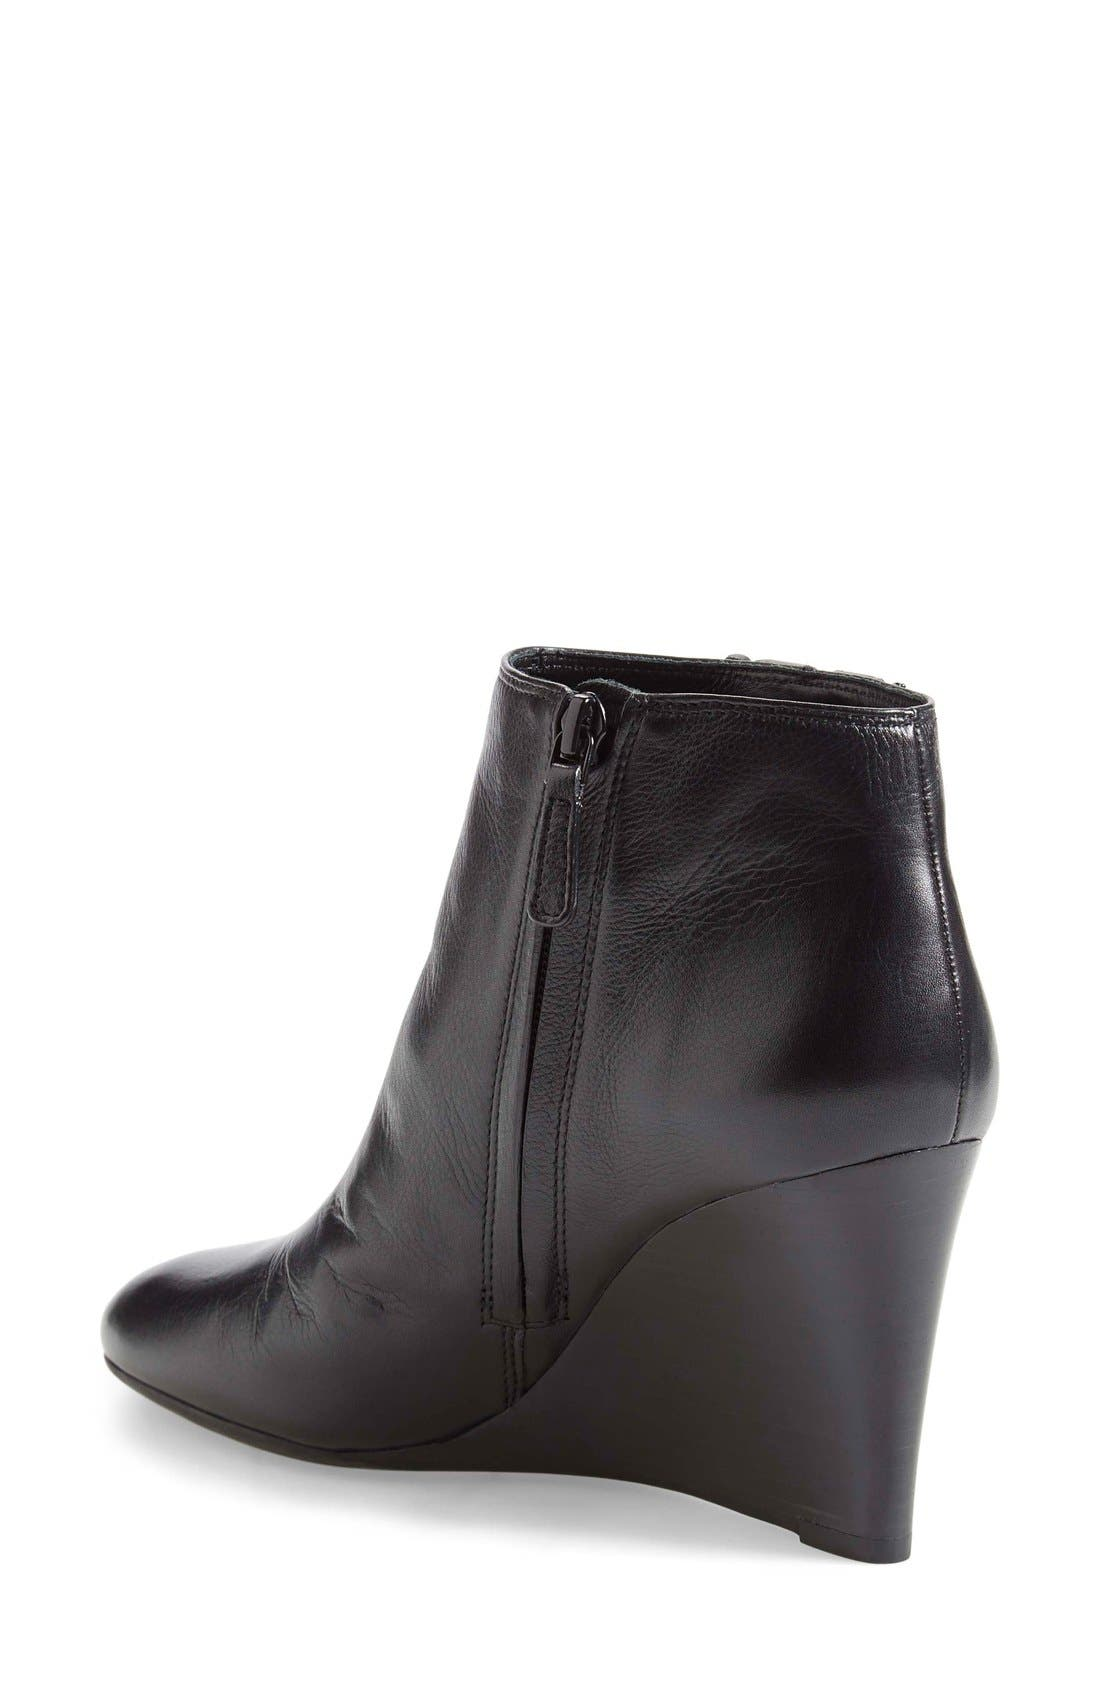 'Lowell' Wedge Bootie,                             Alternate thumbnail 2, color,                             Black Leather